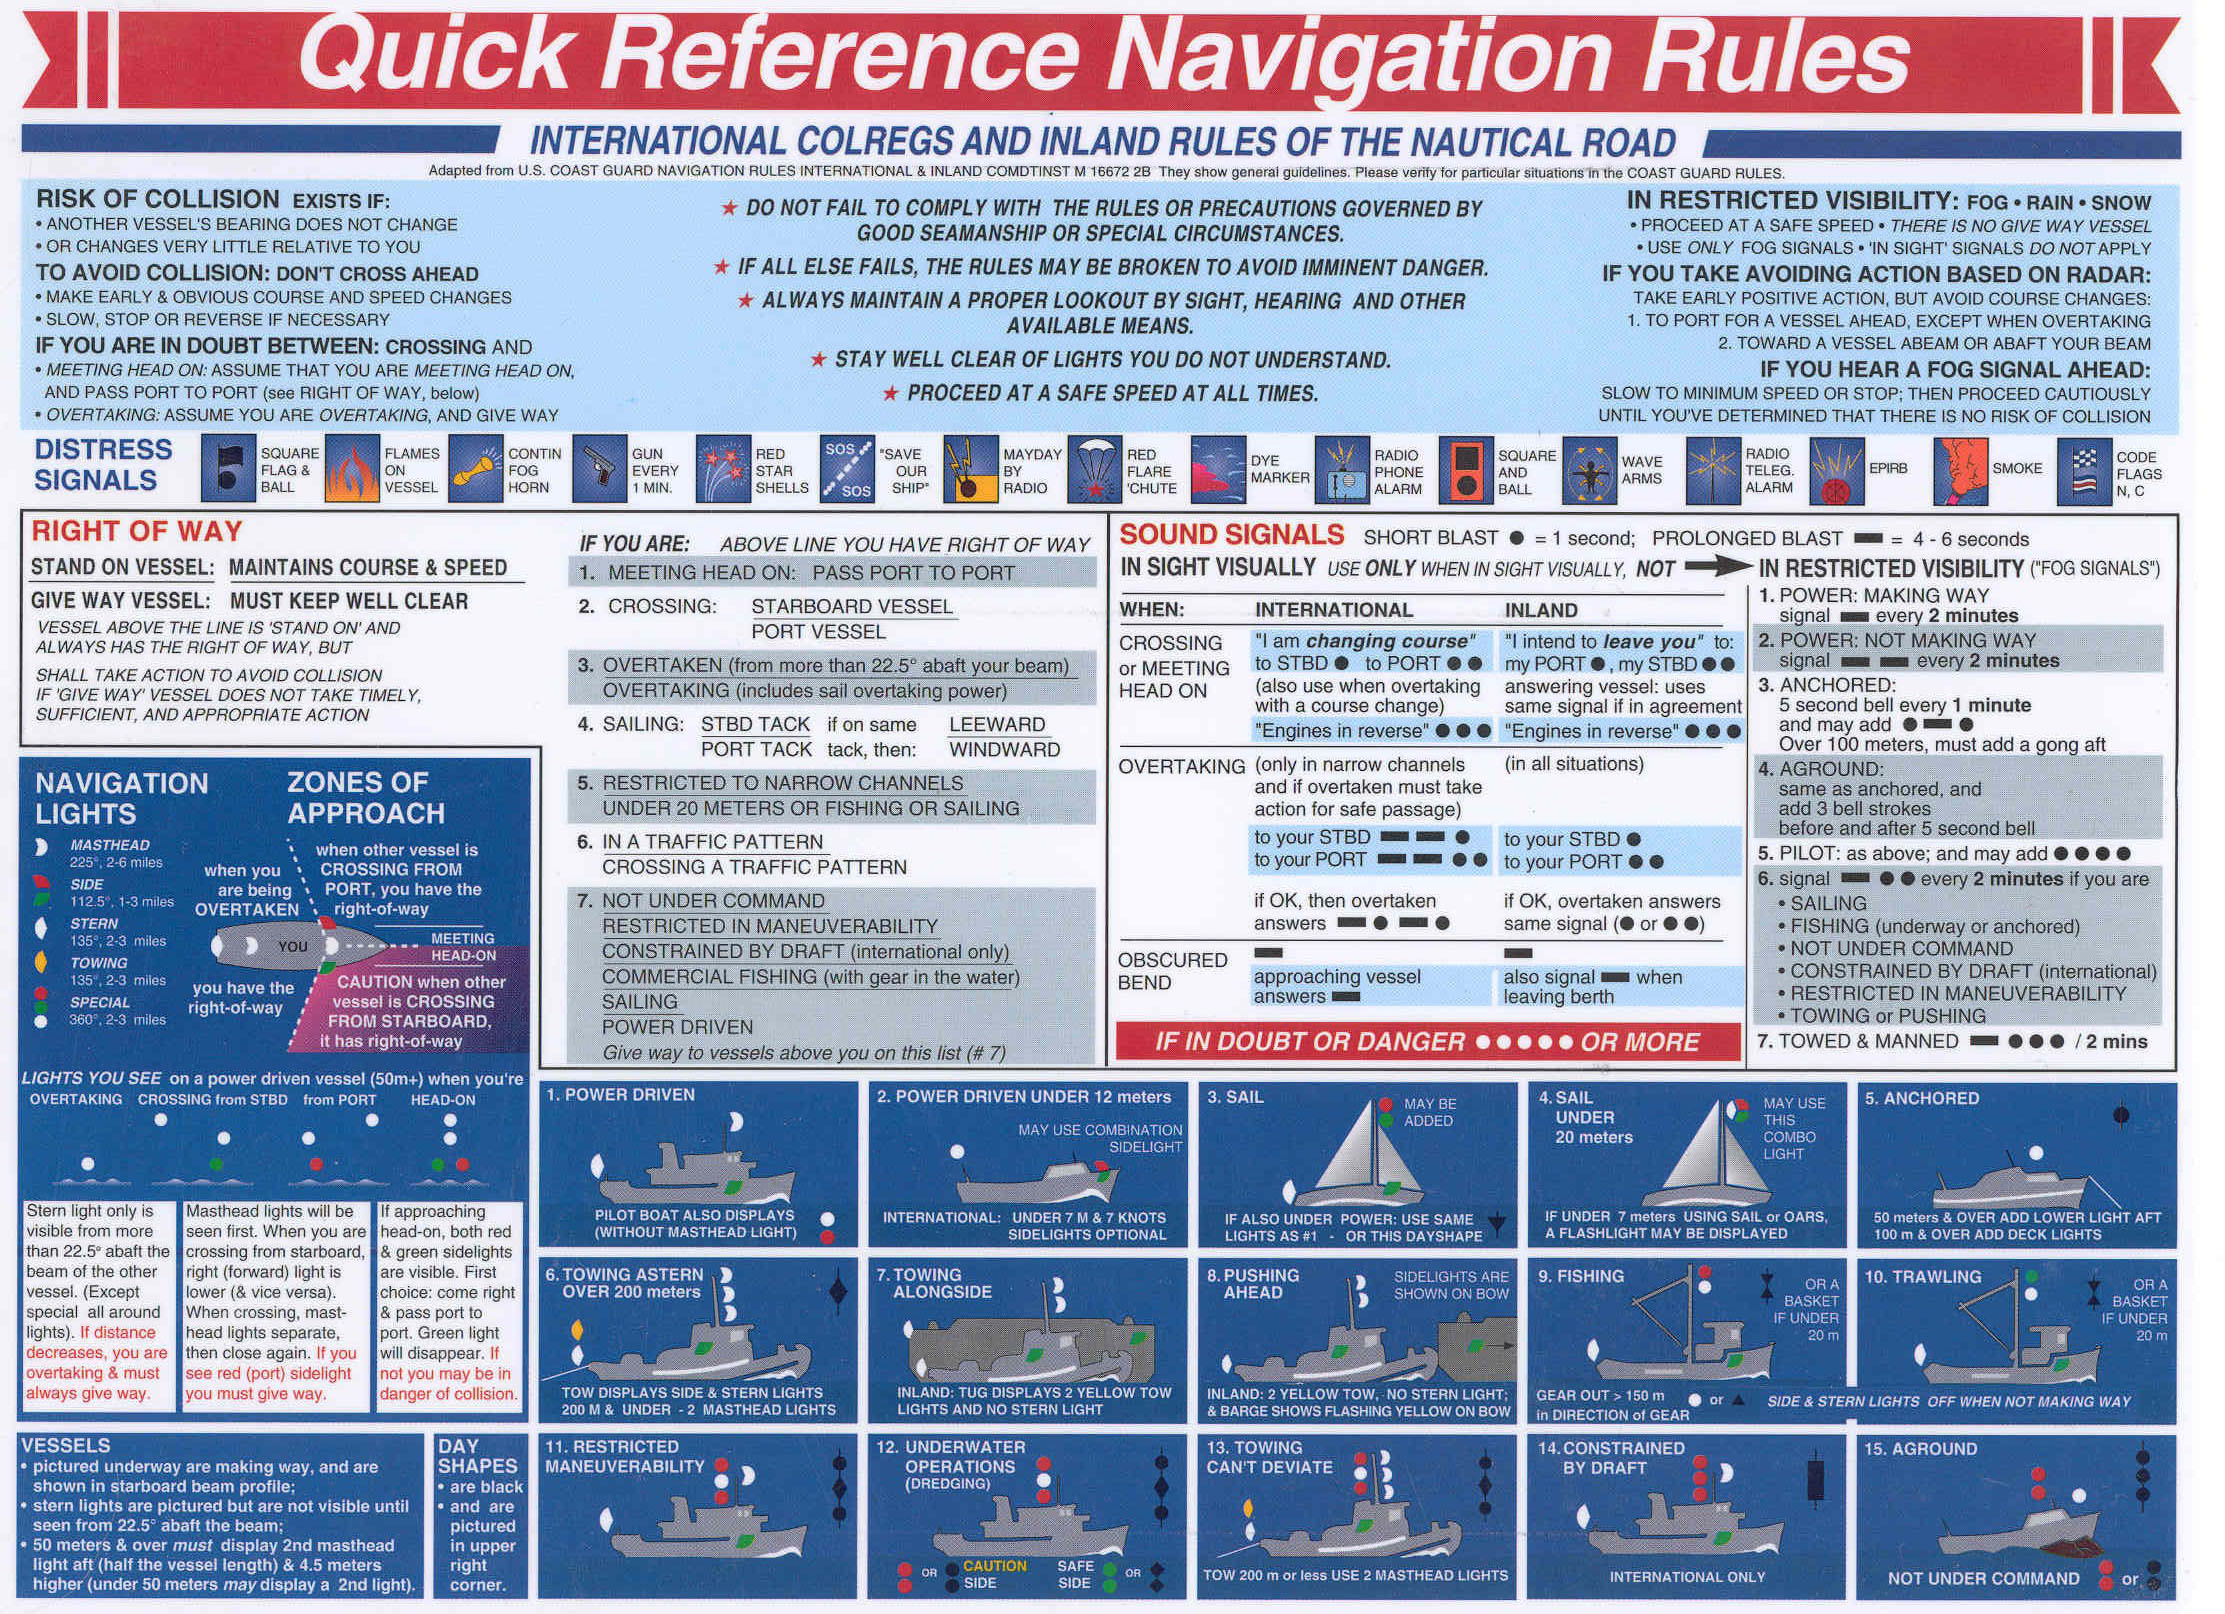 You can buy the card pictured above at West Marine.  It includes sound signals, and on the other side, aids to navigation.  Keep this in your sailing bag for reference when you need help interpreting lights at night.